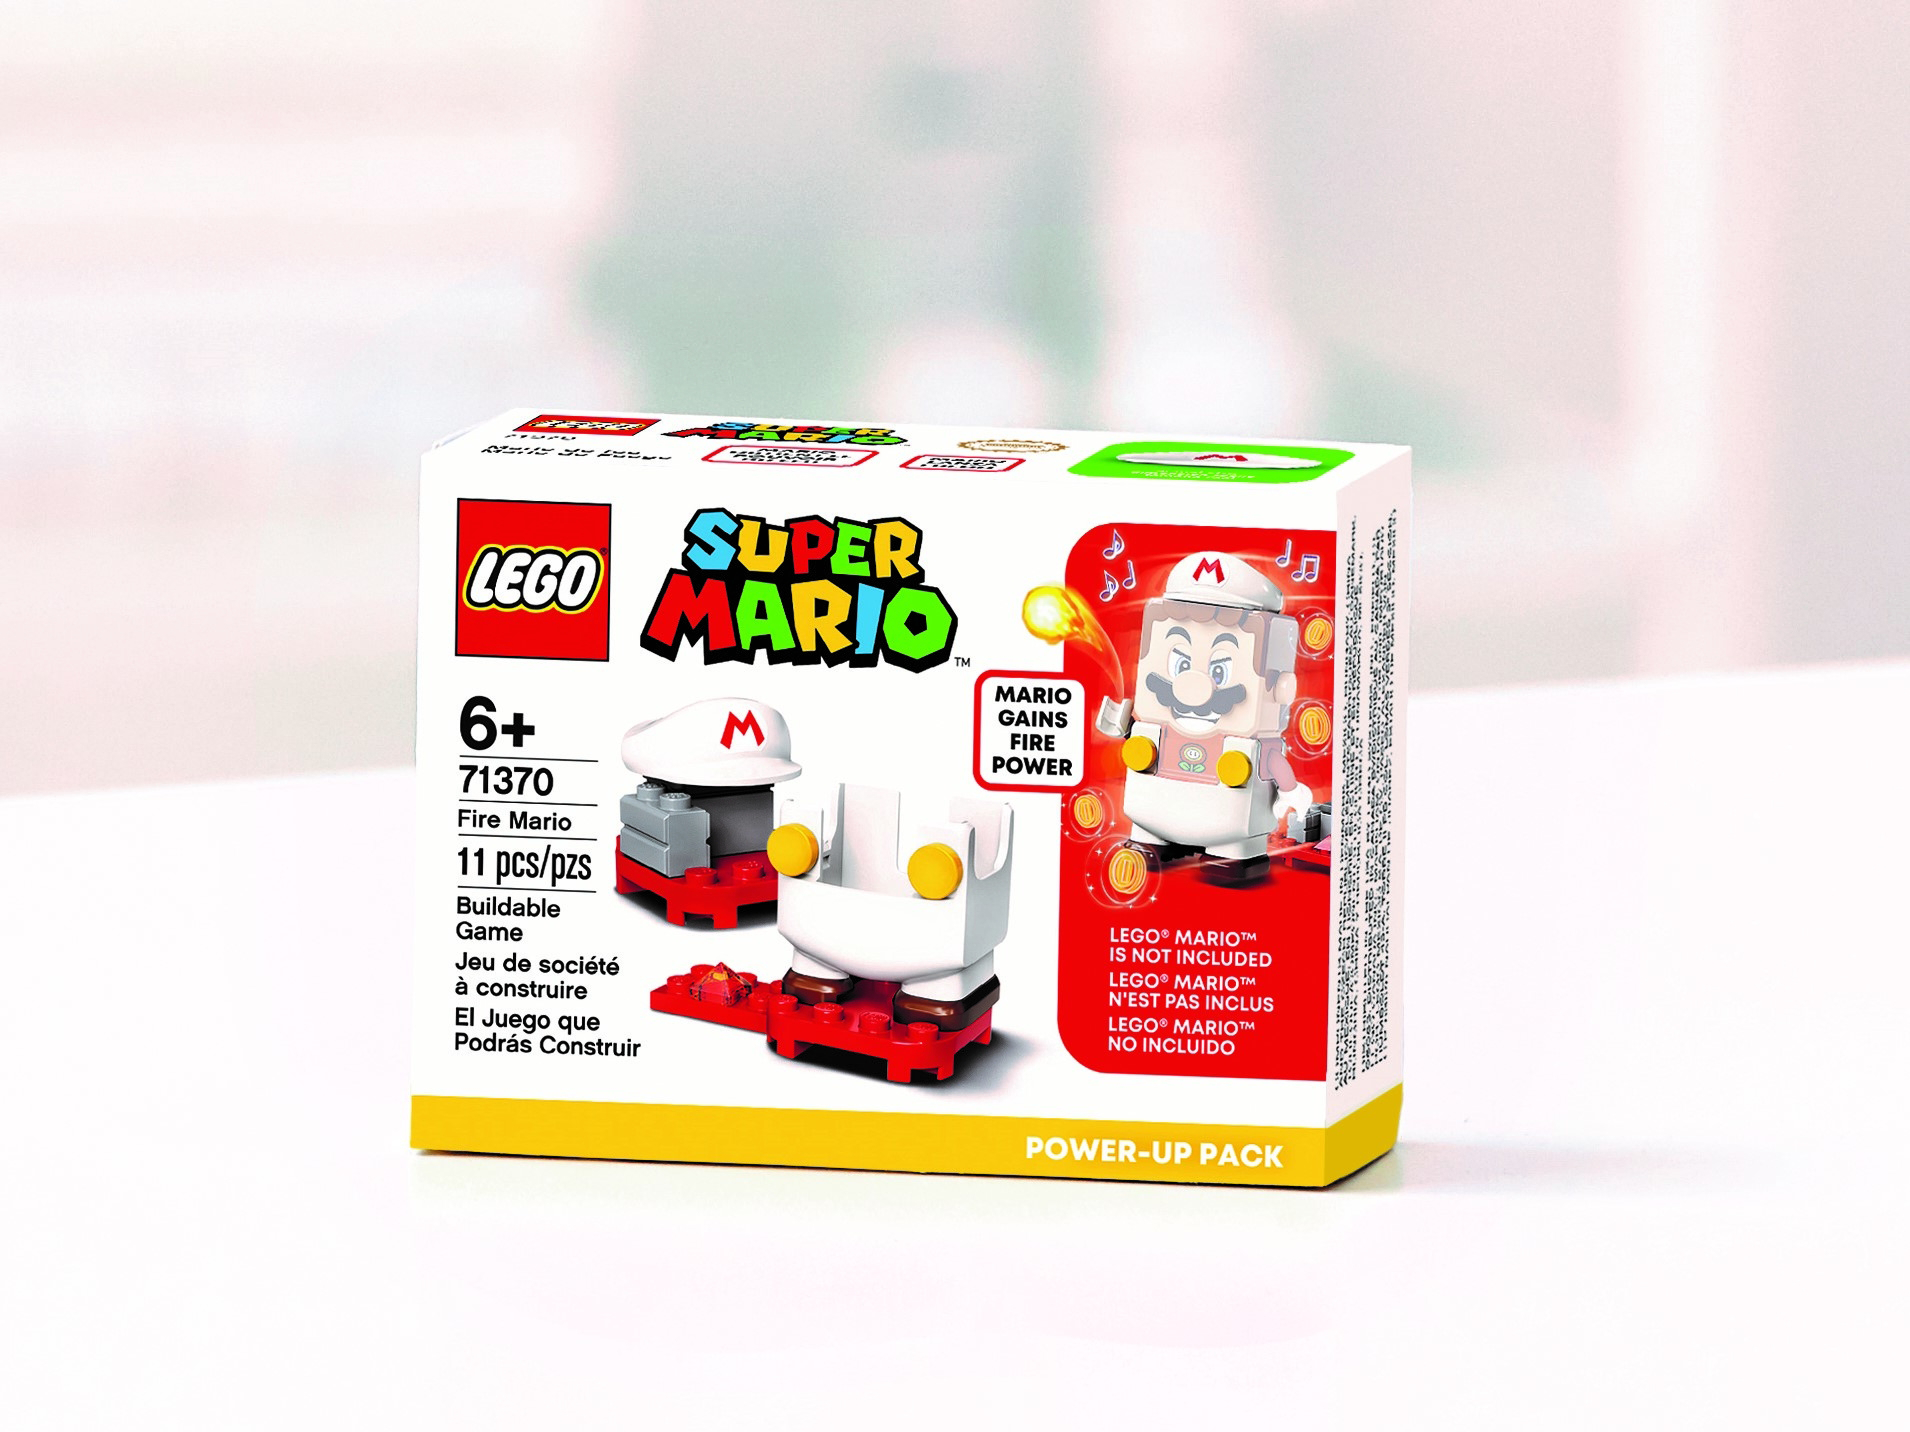 Fire Mario Power-Up Pack